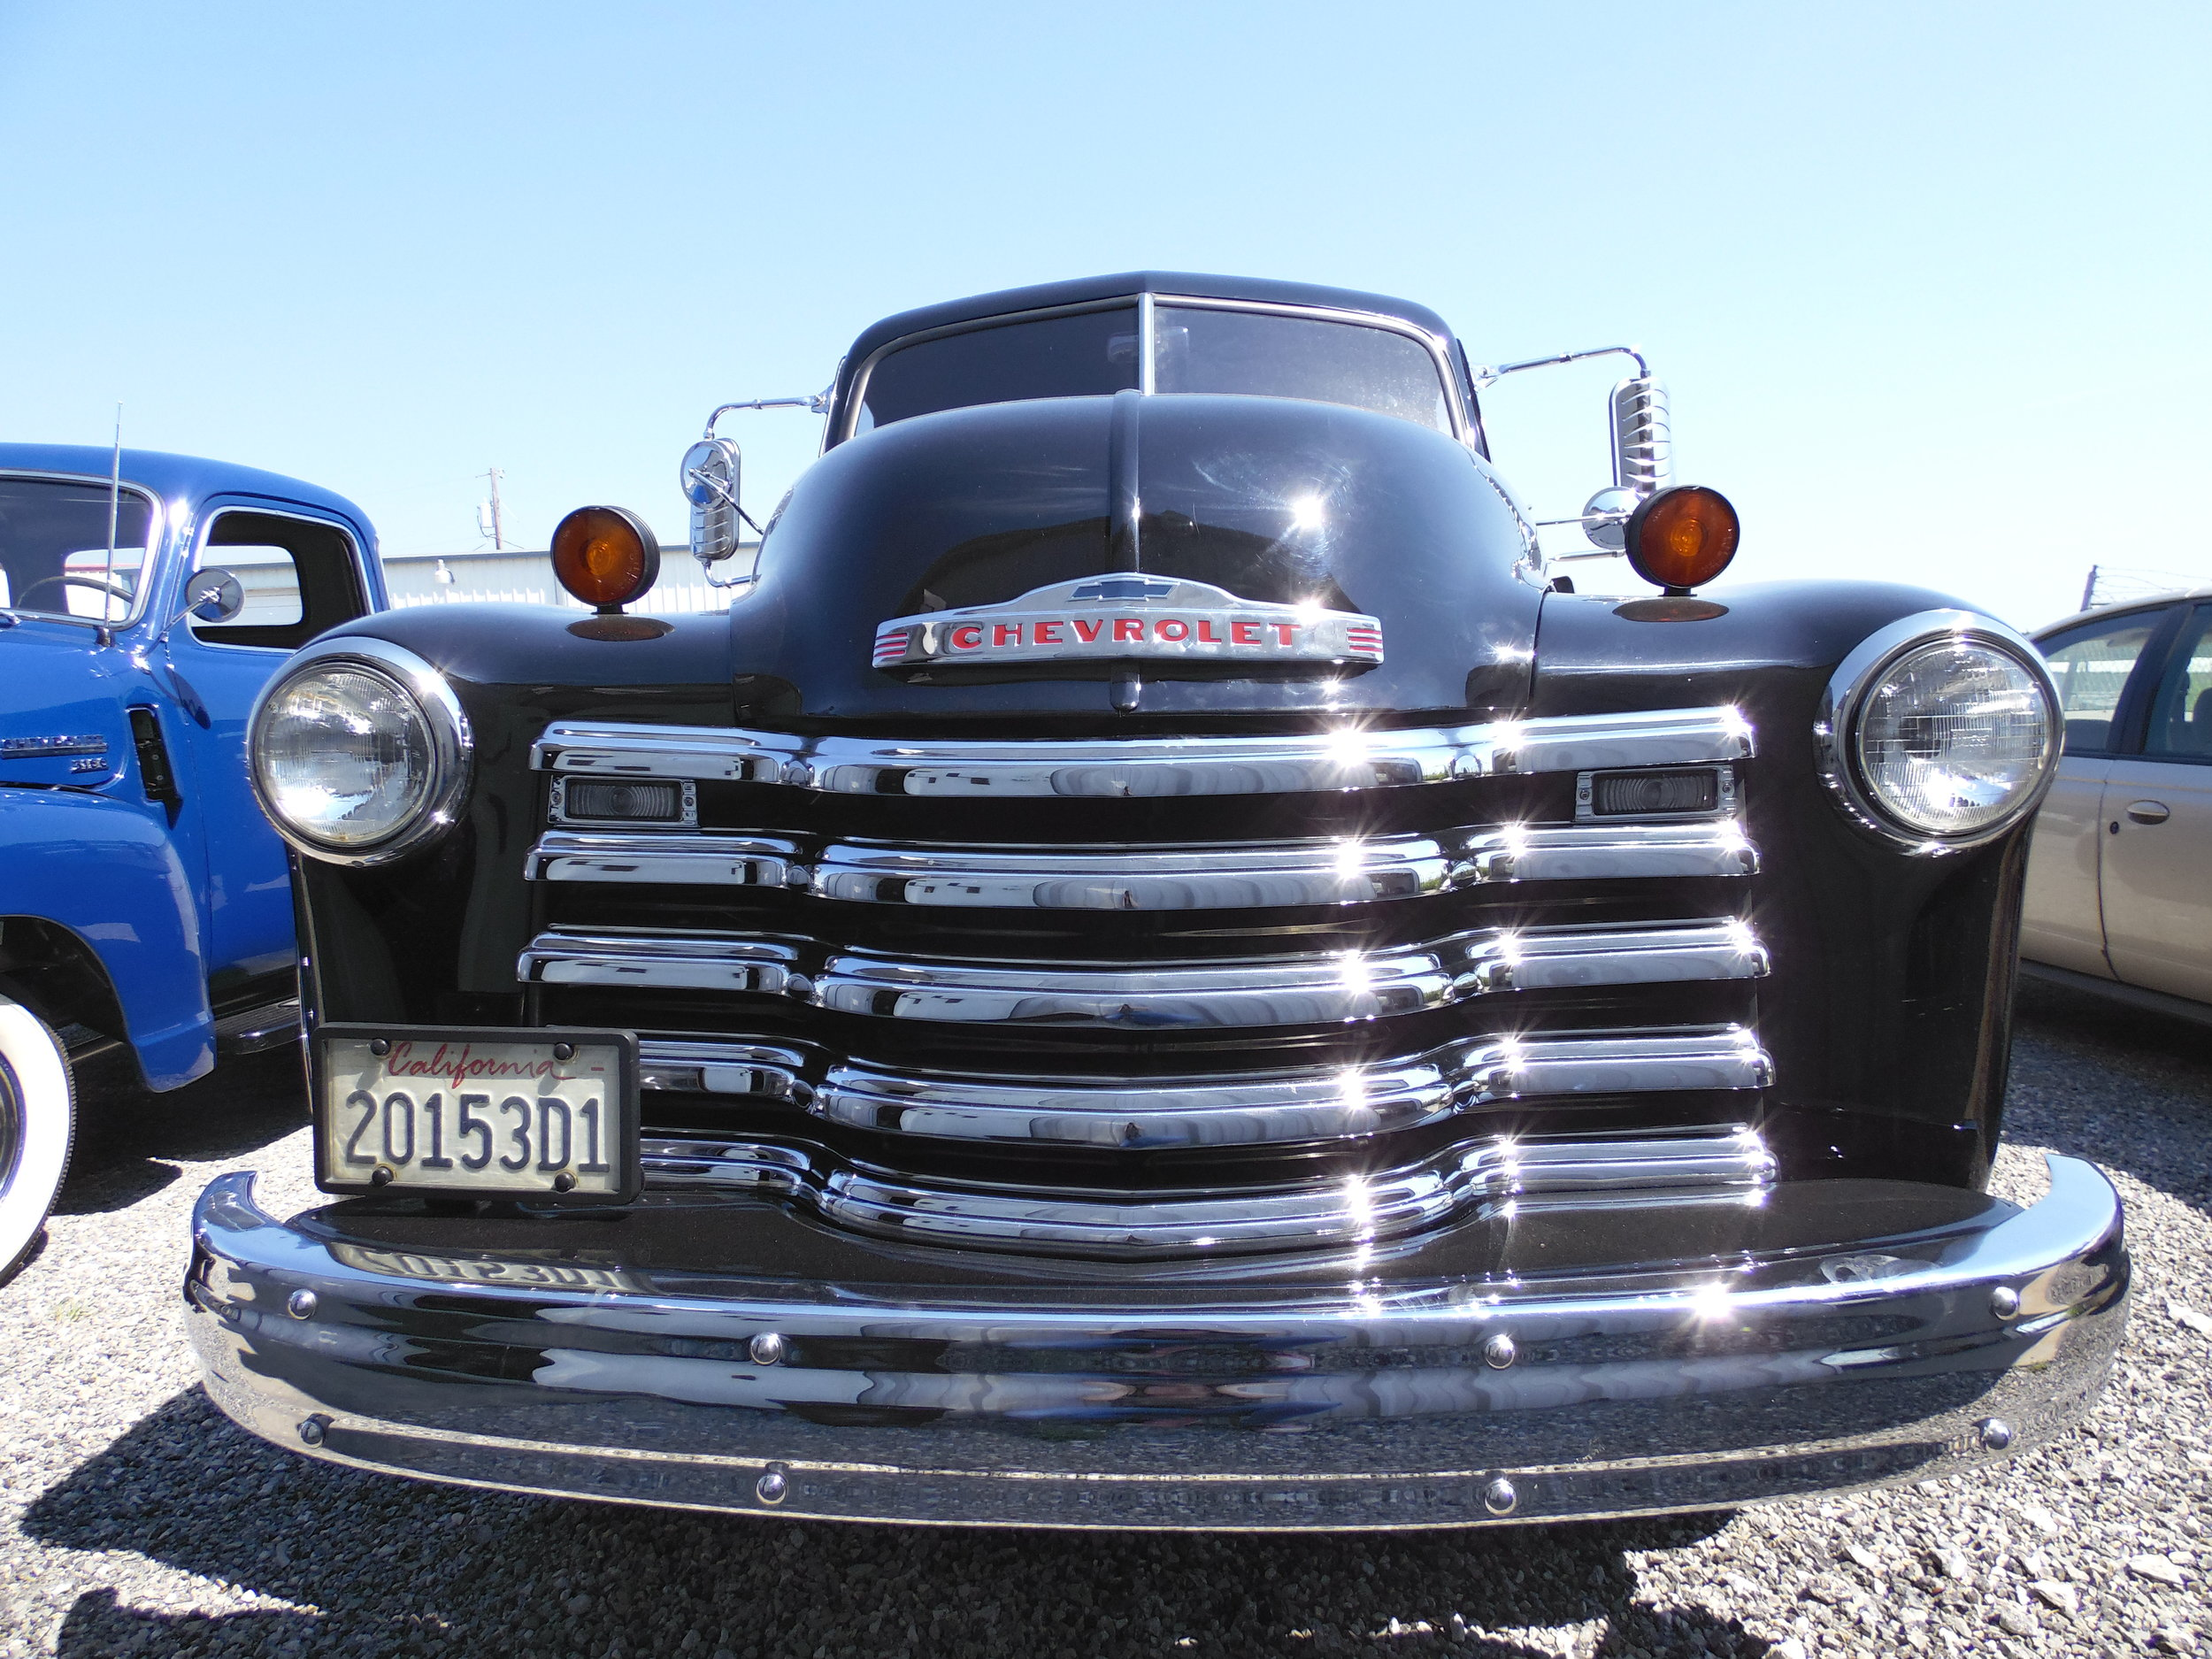 1951Chevrolet Dually - 2016 Texoma Vintage & Classic Car Club - Class Award